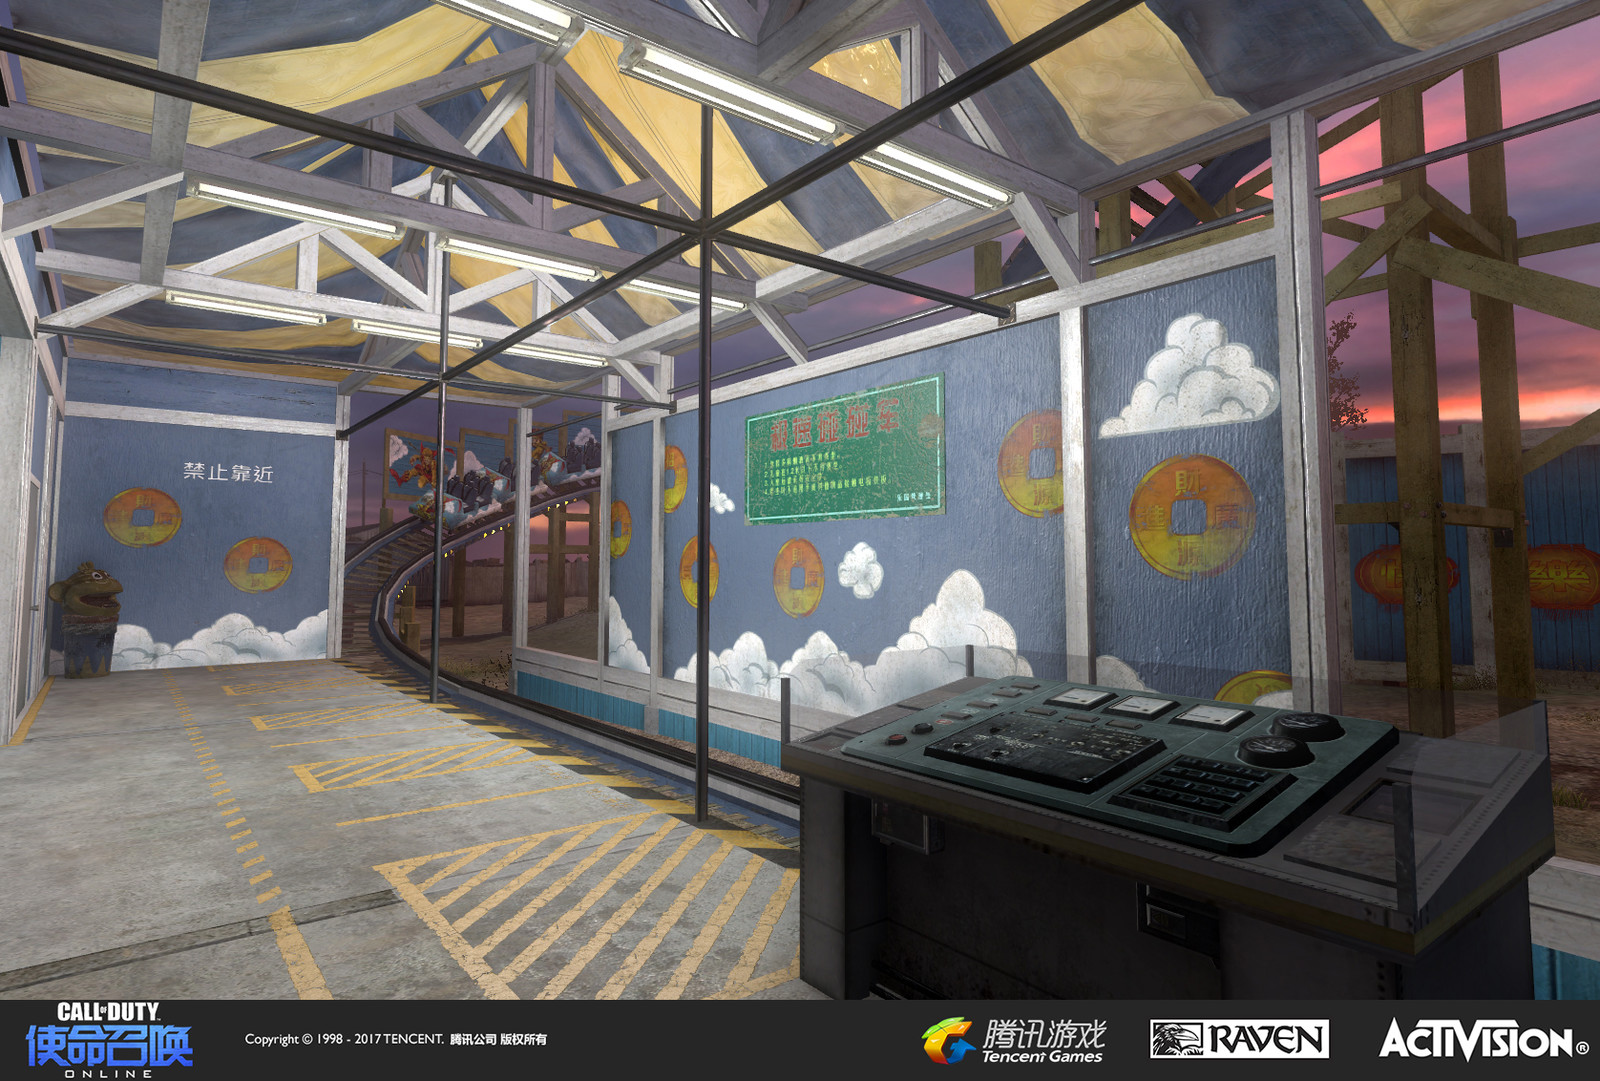 Carnival: The interior of the roller coaster loading station. I modified the old geo, re-textured, and re-themed the ride to comply with the Monkey King theme. I also created a control console with added set dress.